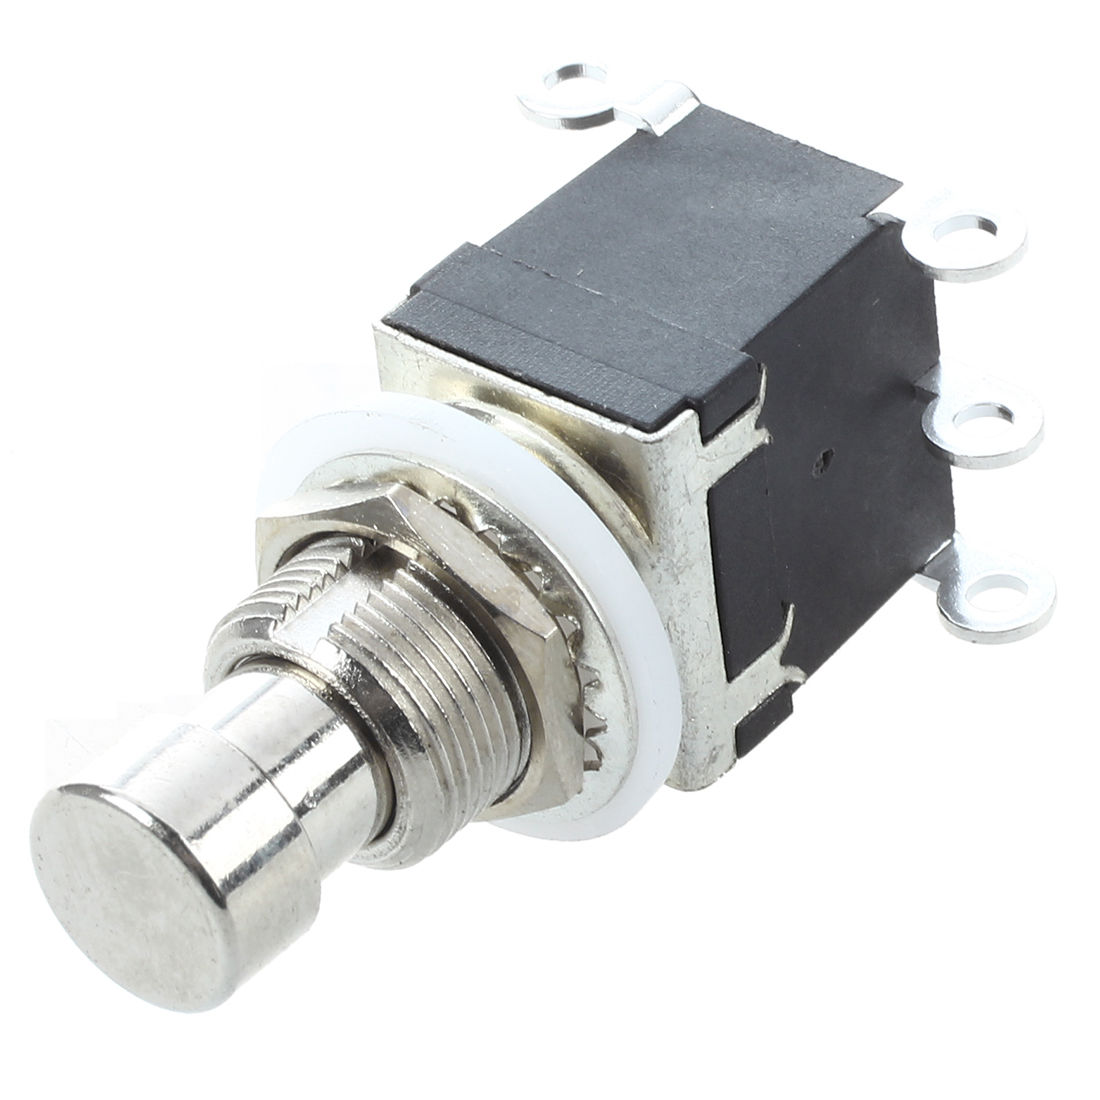 medium resolution of aliexpress com buy 6pins dpdt momentary stomp foot switch for guitar ac 250v 2a 125v 4a from reliable switch for guitar suppliers on decorative lifestyle